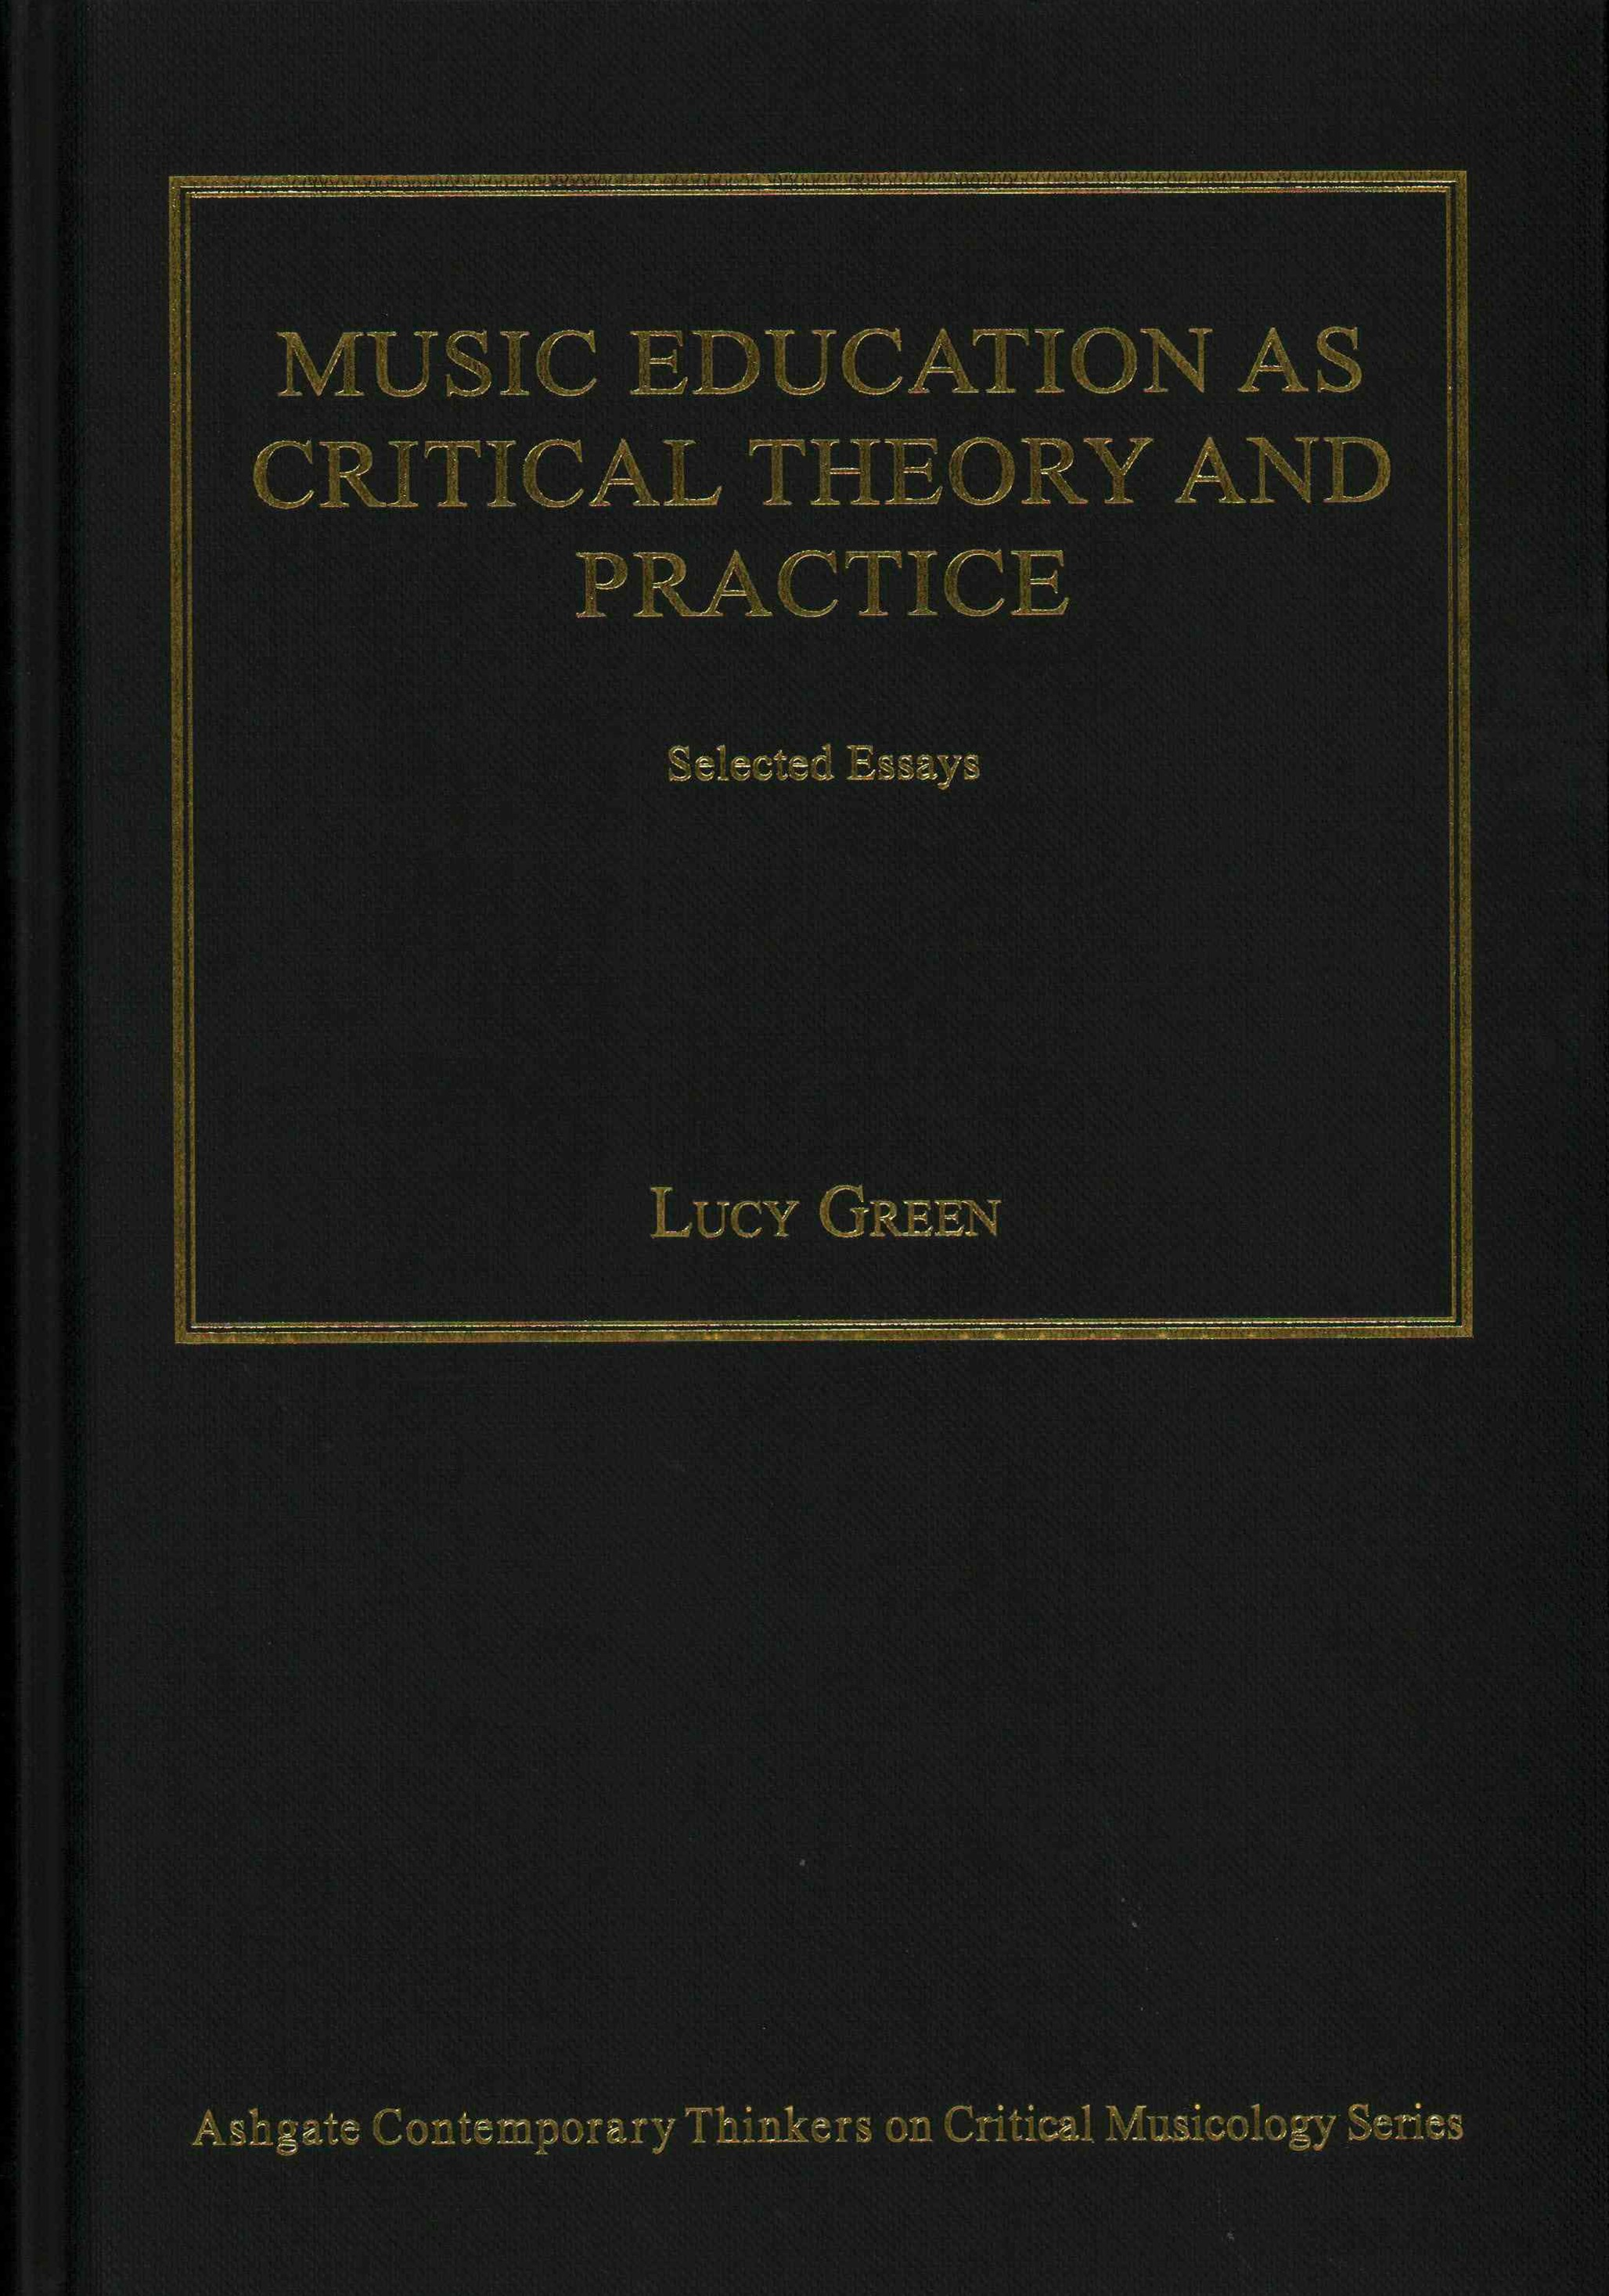 Music Education as Critical Theory and Practice